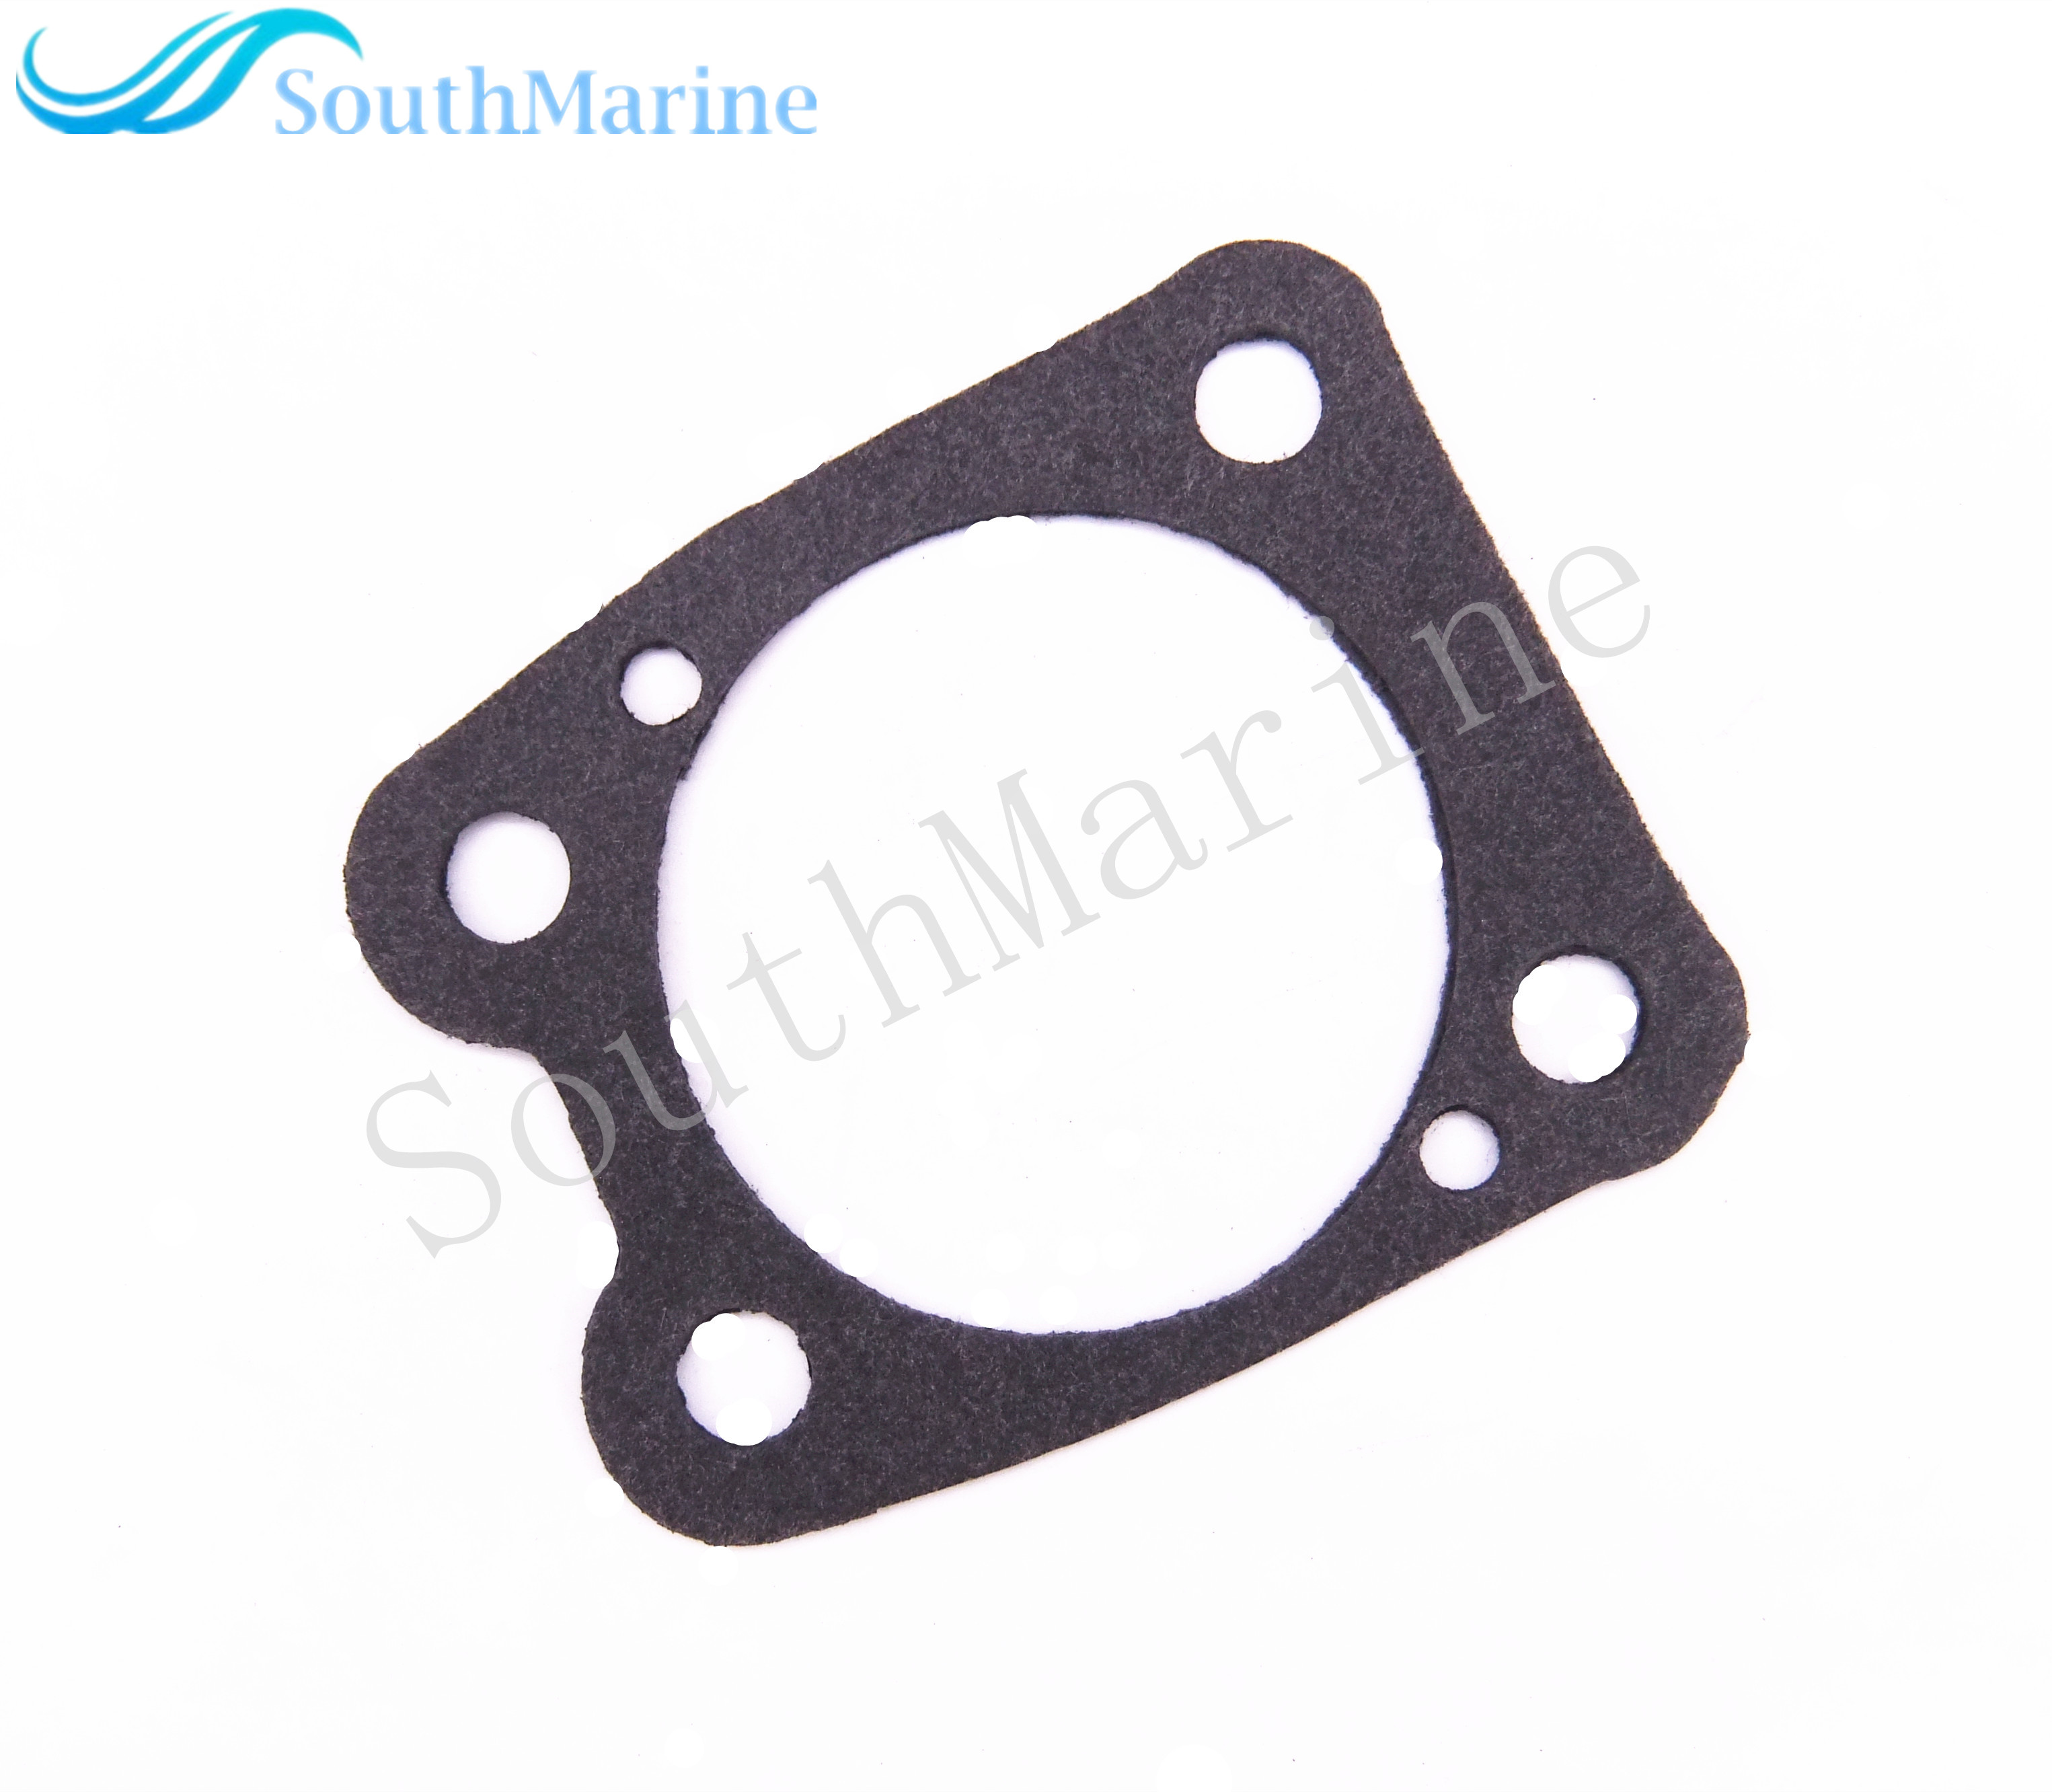 F4-06.18 Water Pump Gasket for Hidea 4-Stroke F4 F5 Boat Engines Outboard Motors ,Free Shipping